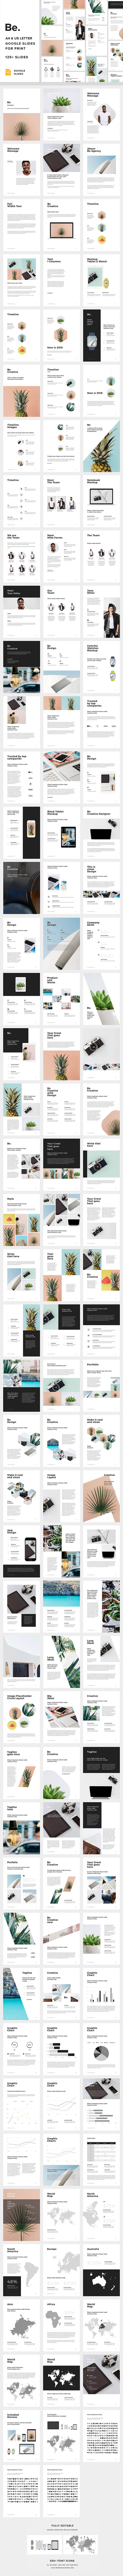 A4 + US Letter Google Slides Presentation for Print - Google Slides Presentation Templates